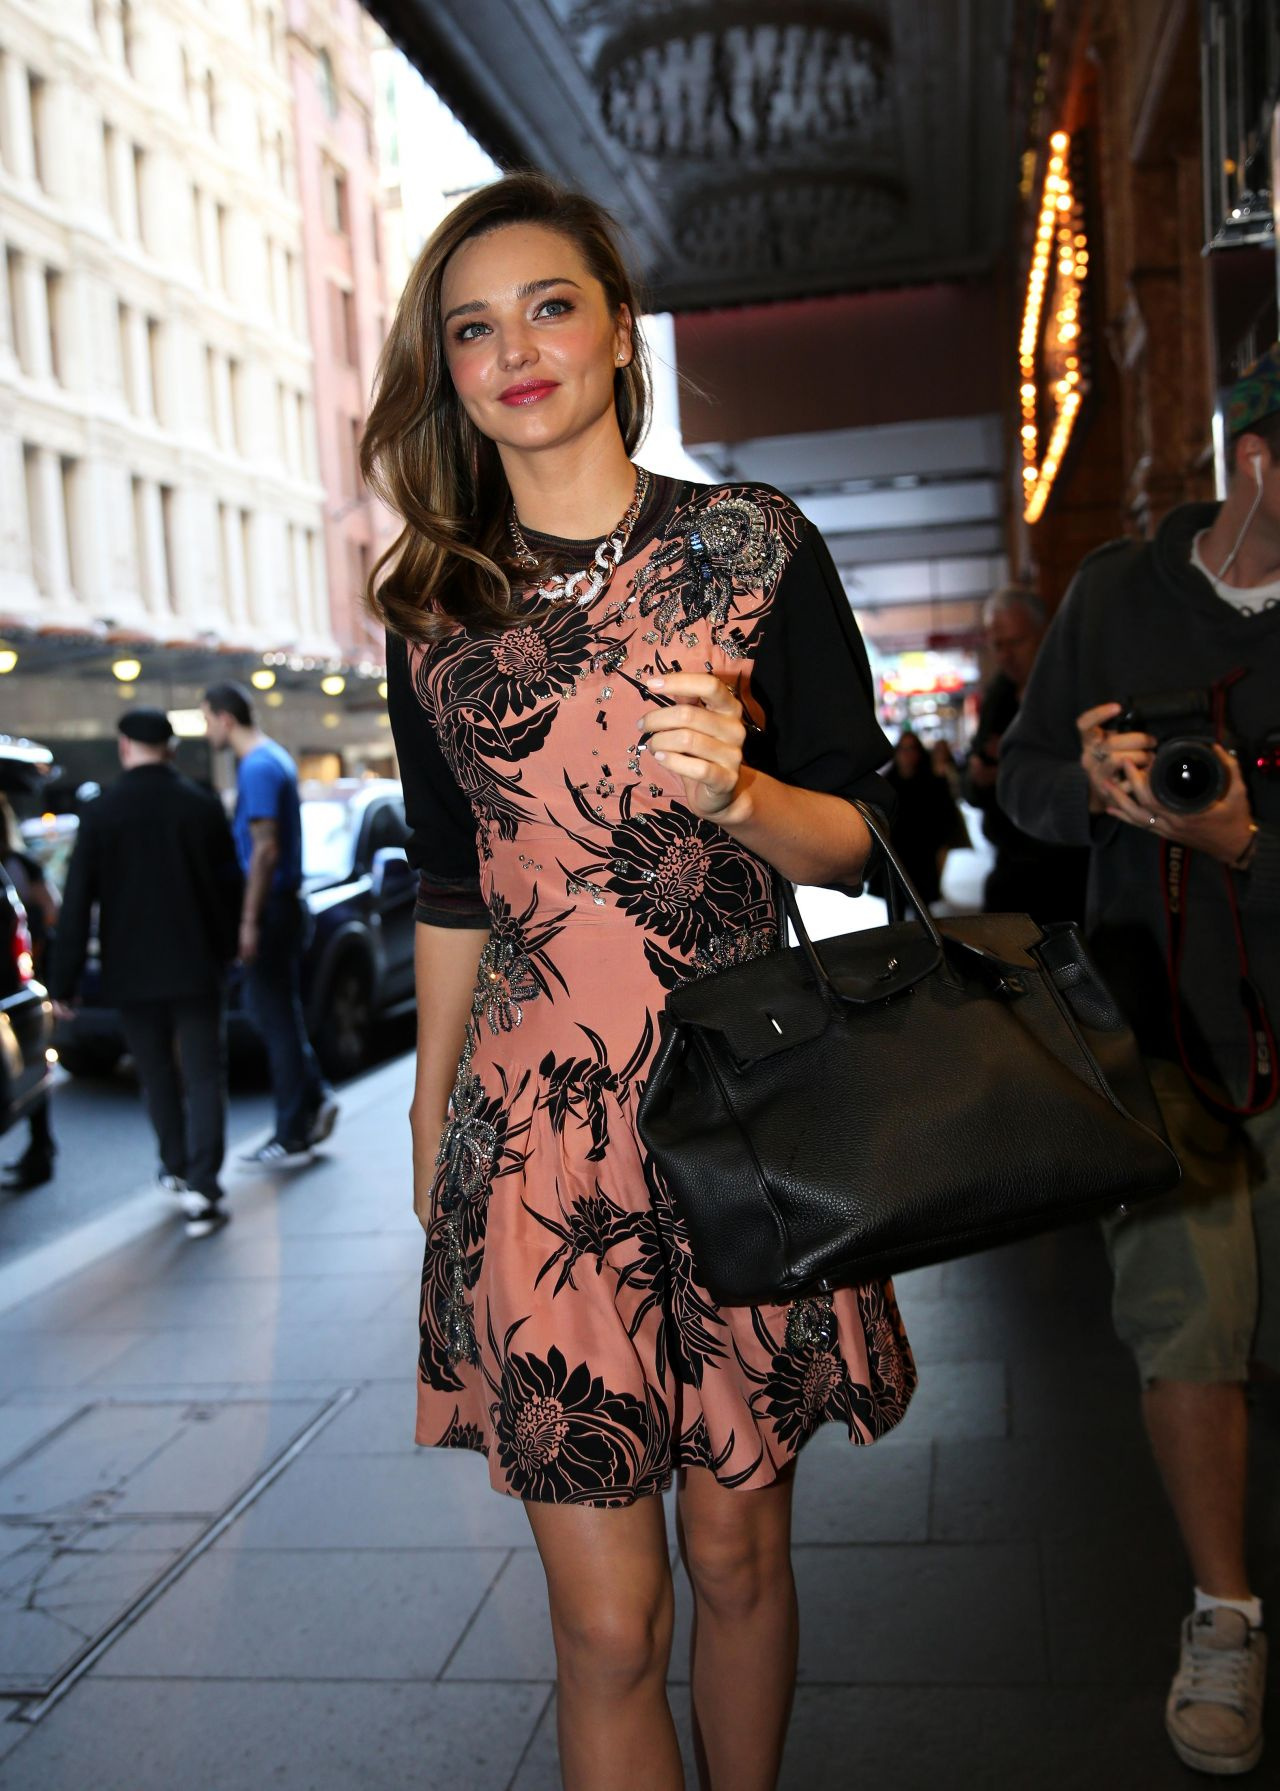 Miranda Kerr Wearing Prada - QT Hotel in Sydney, Australia, May 2014